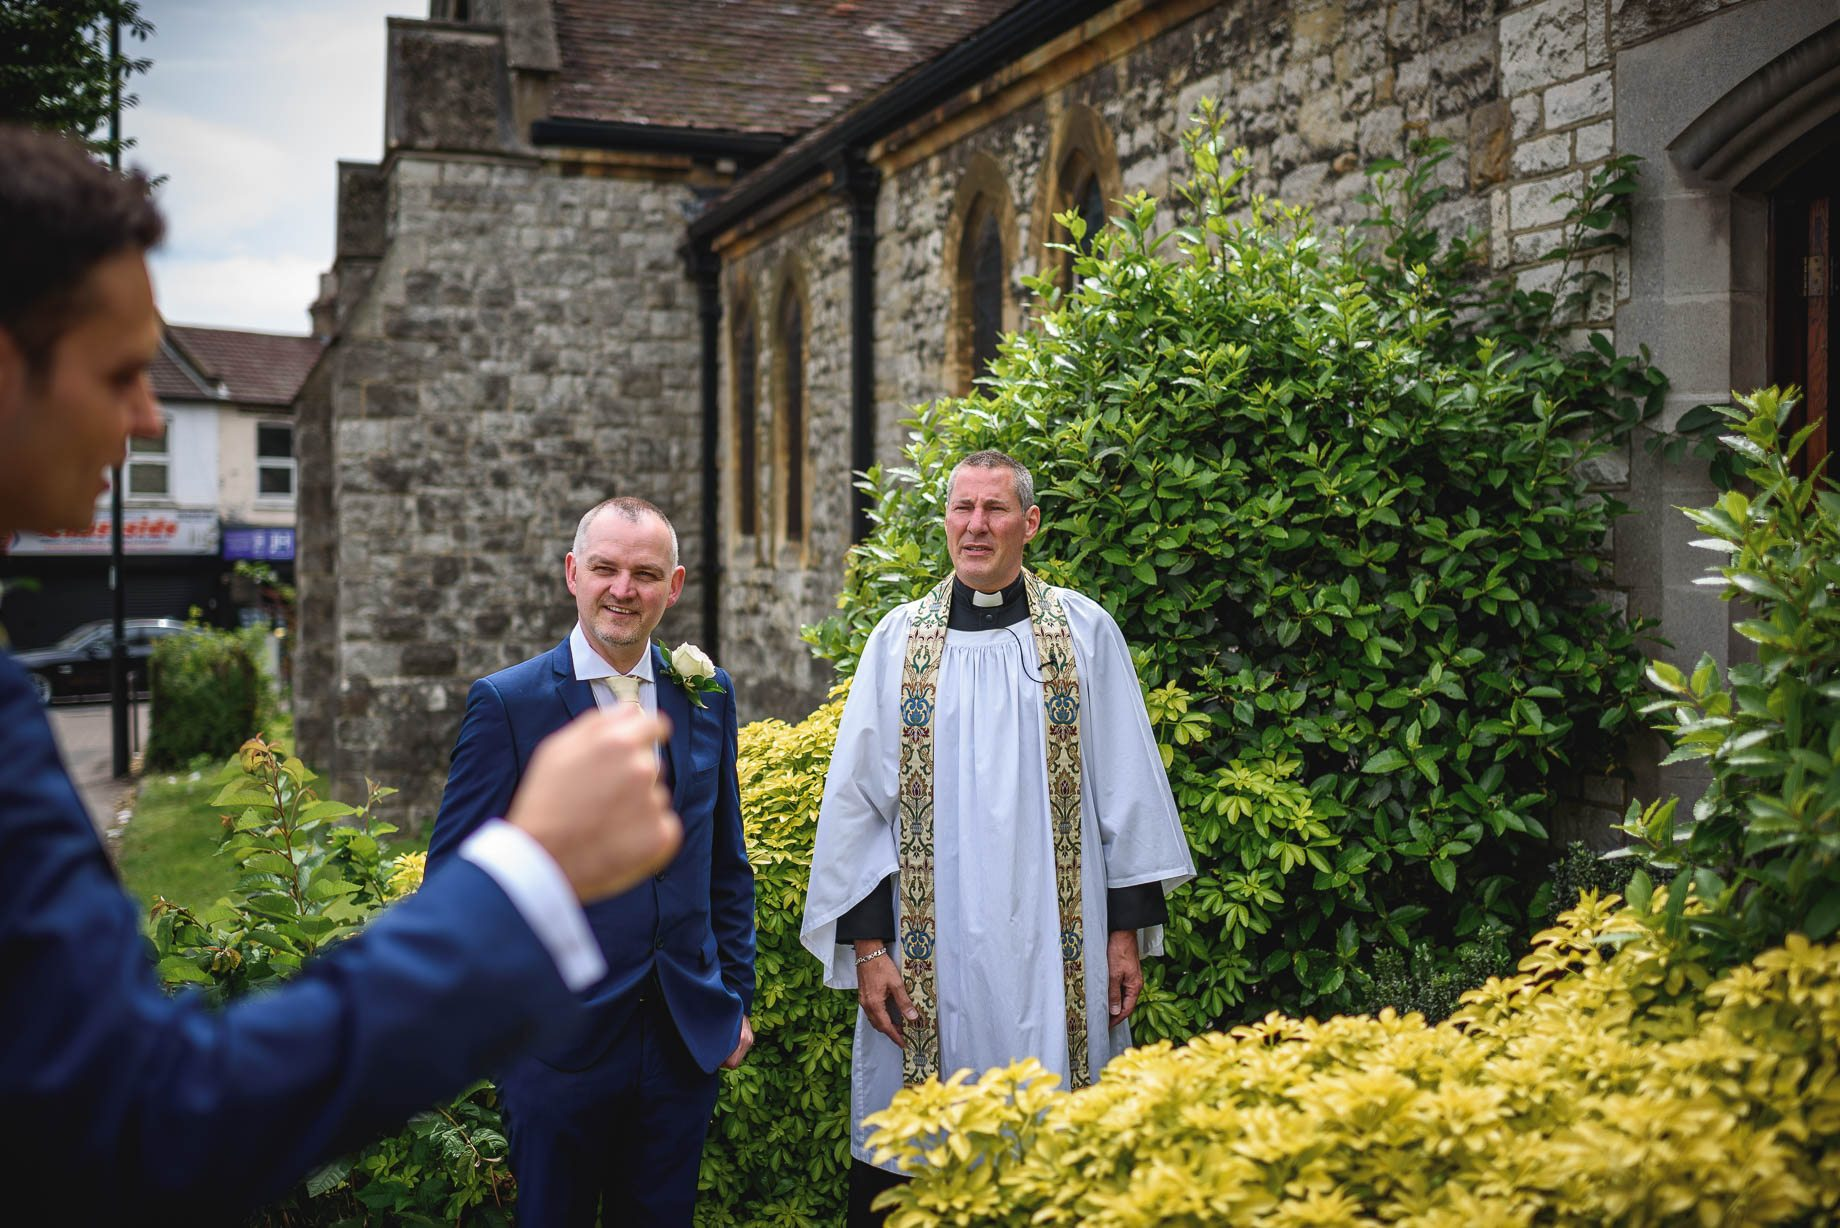 Hertfordshire wedding photography - Sarah and Stephen by Guy Collier Photography (52 of 161)